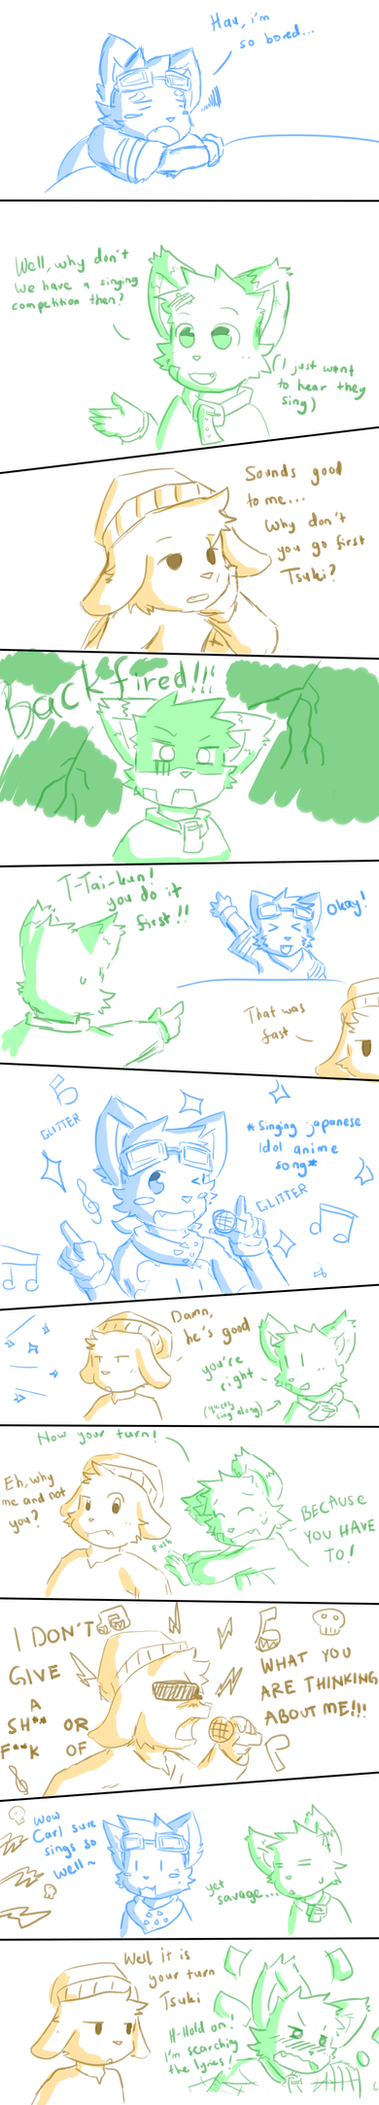 Tsuki And His Friends Silly Moments #2 -Taiyo/Carl by NeiruLysor36